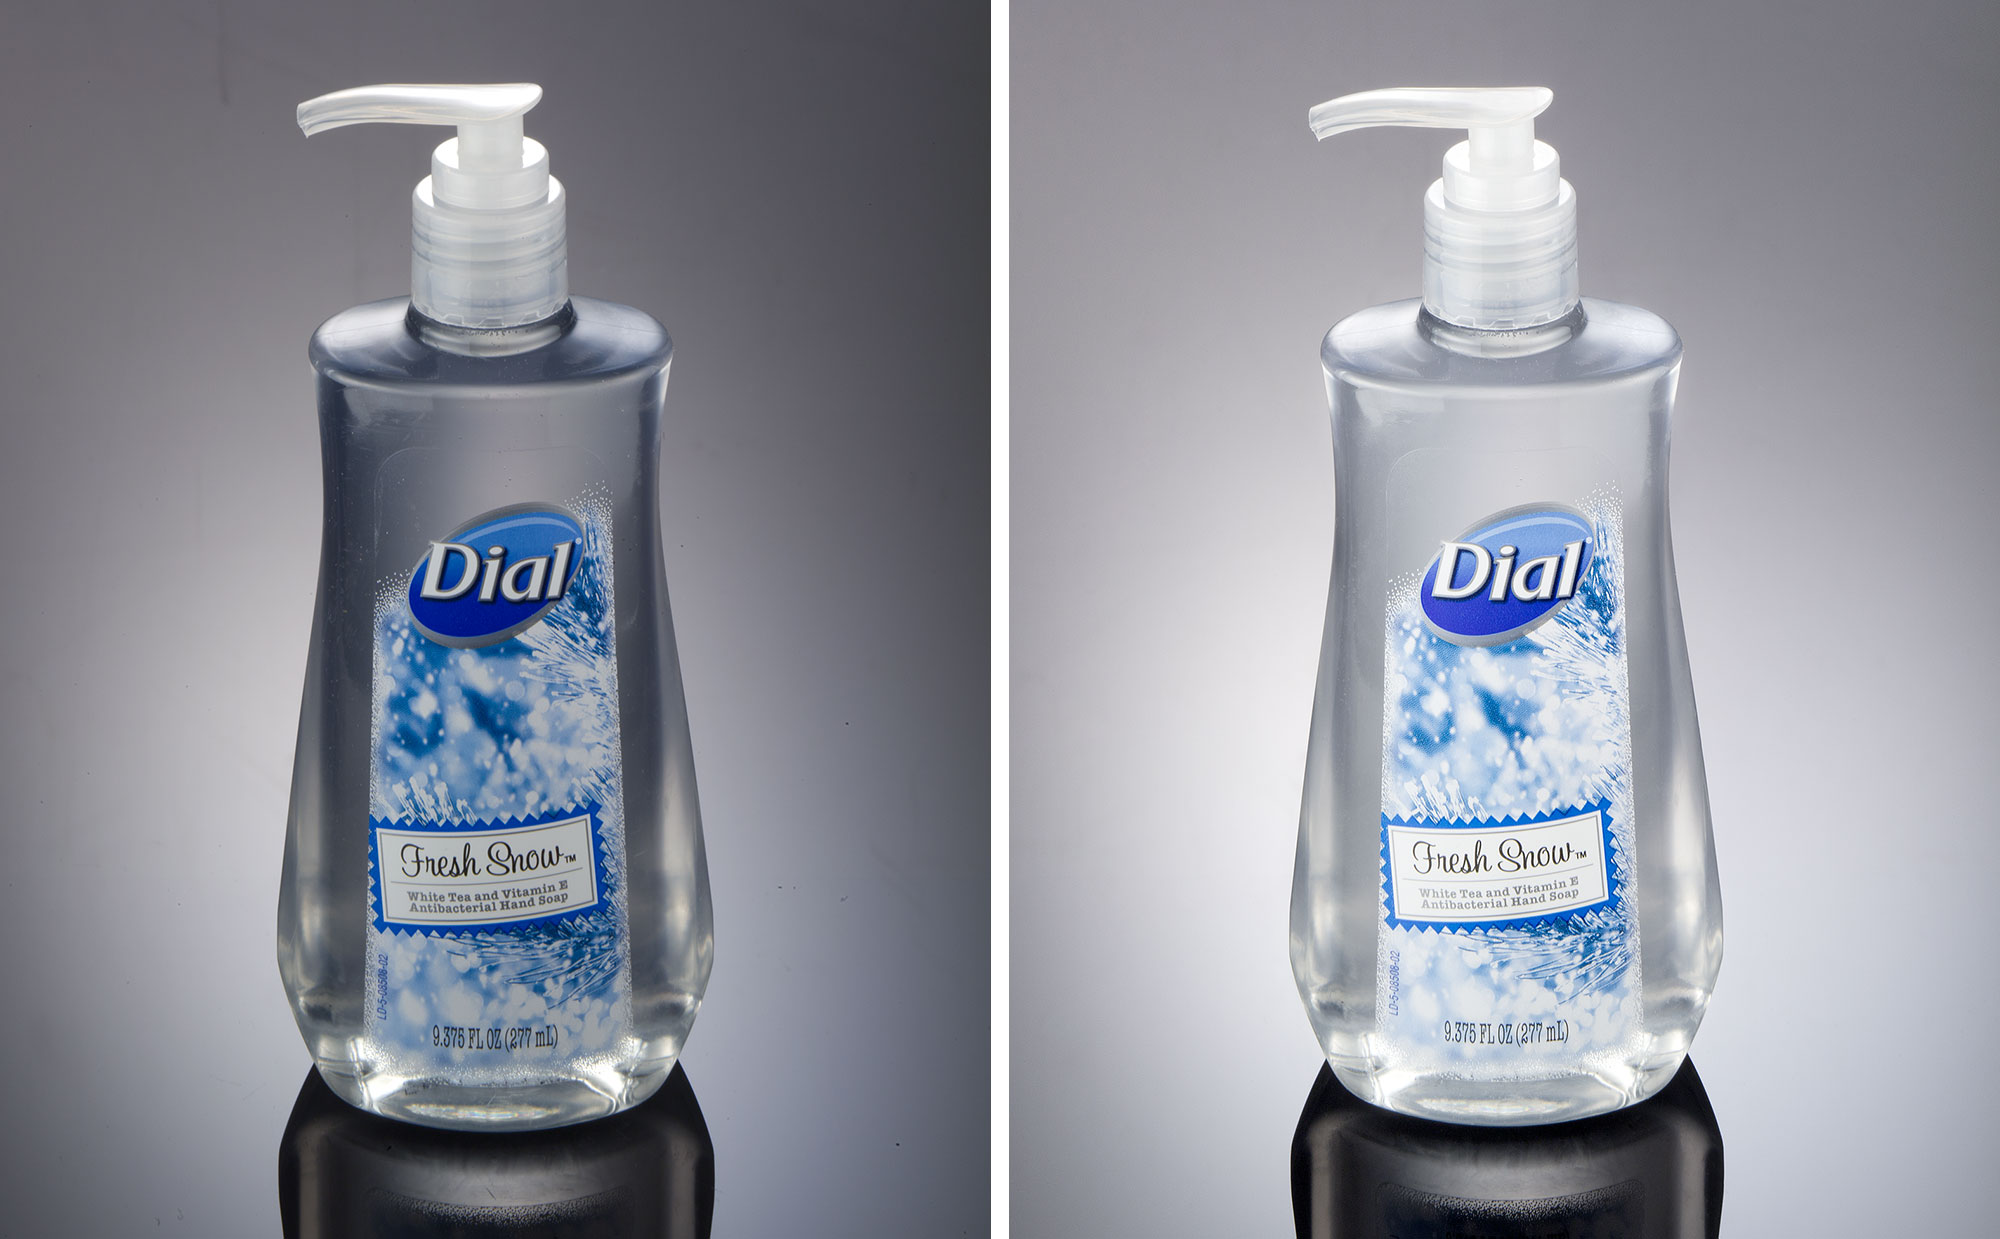 Professional Retouching I: Dial Hand Soap by Alex Kay